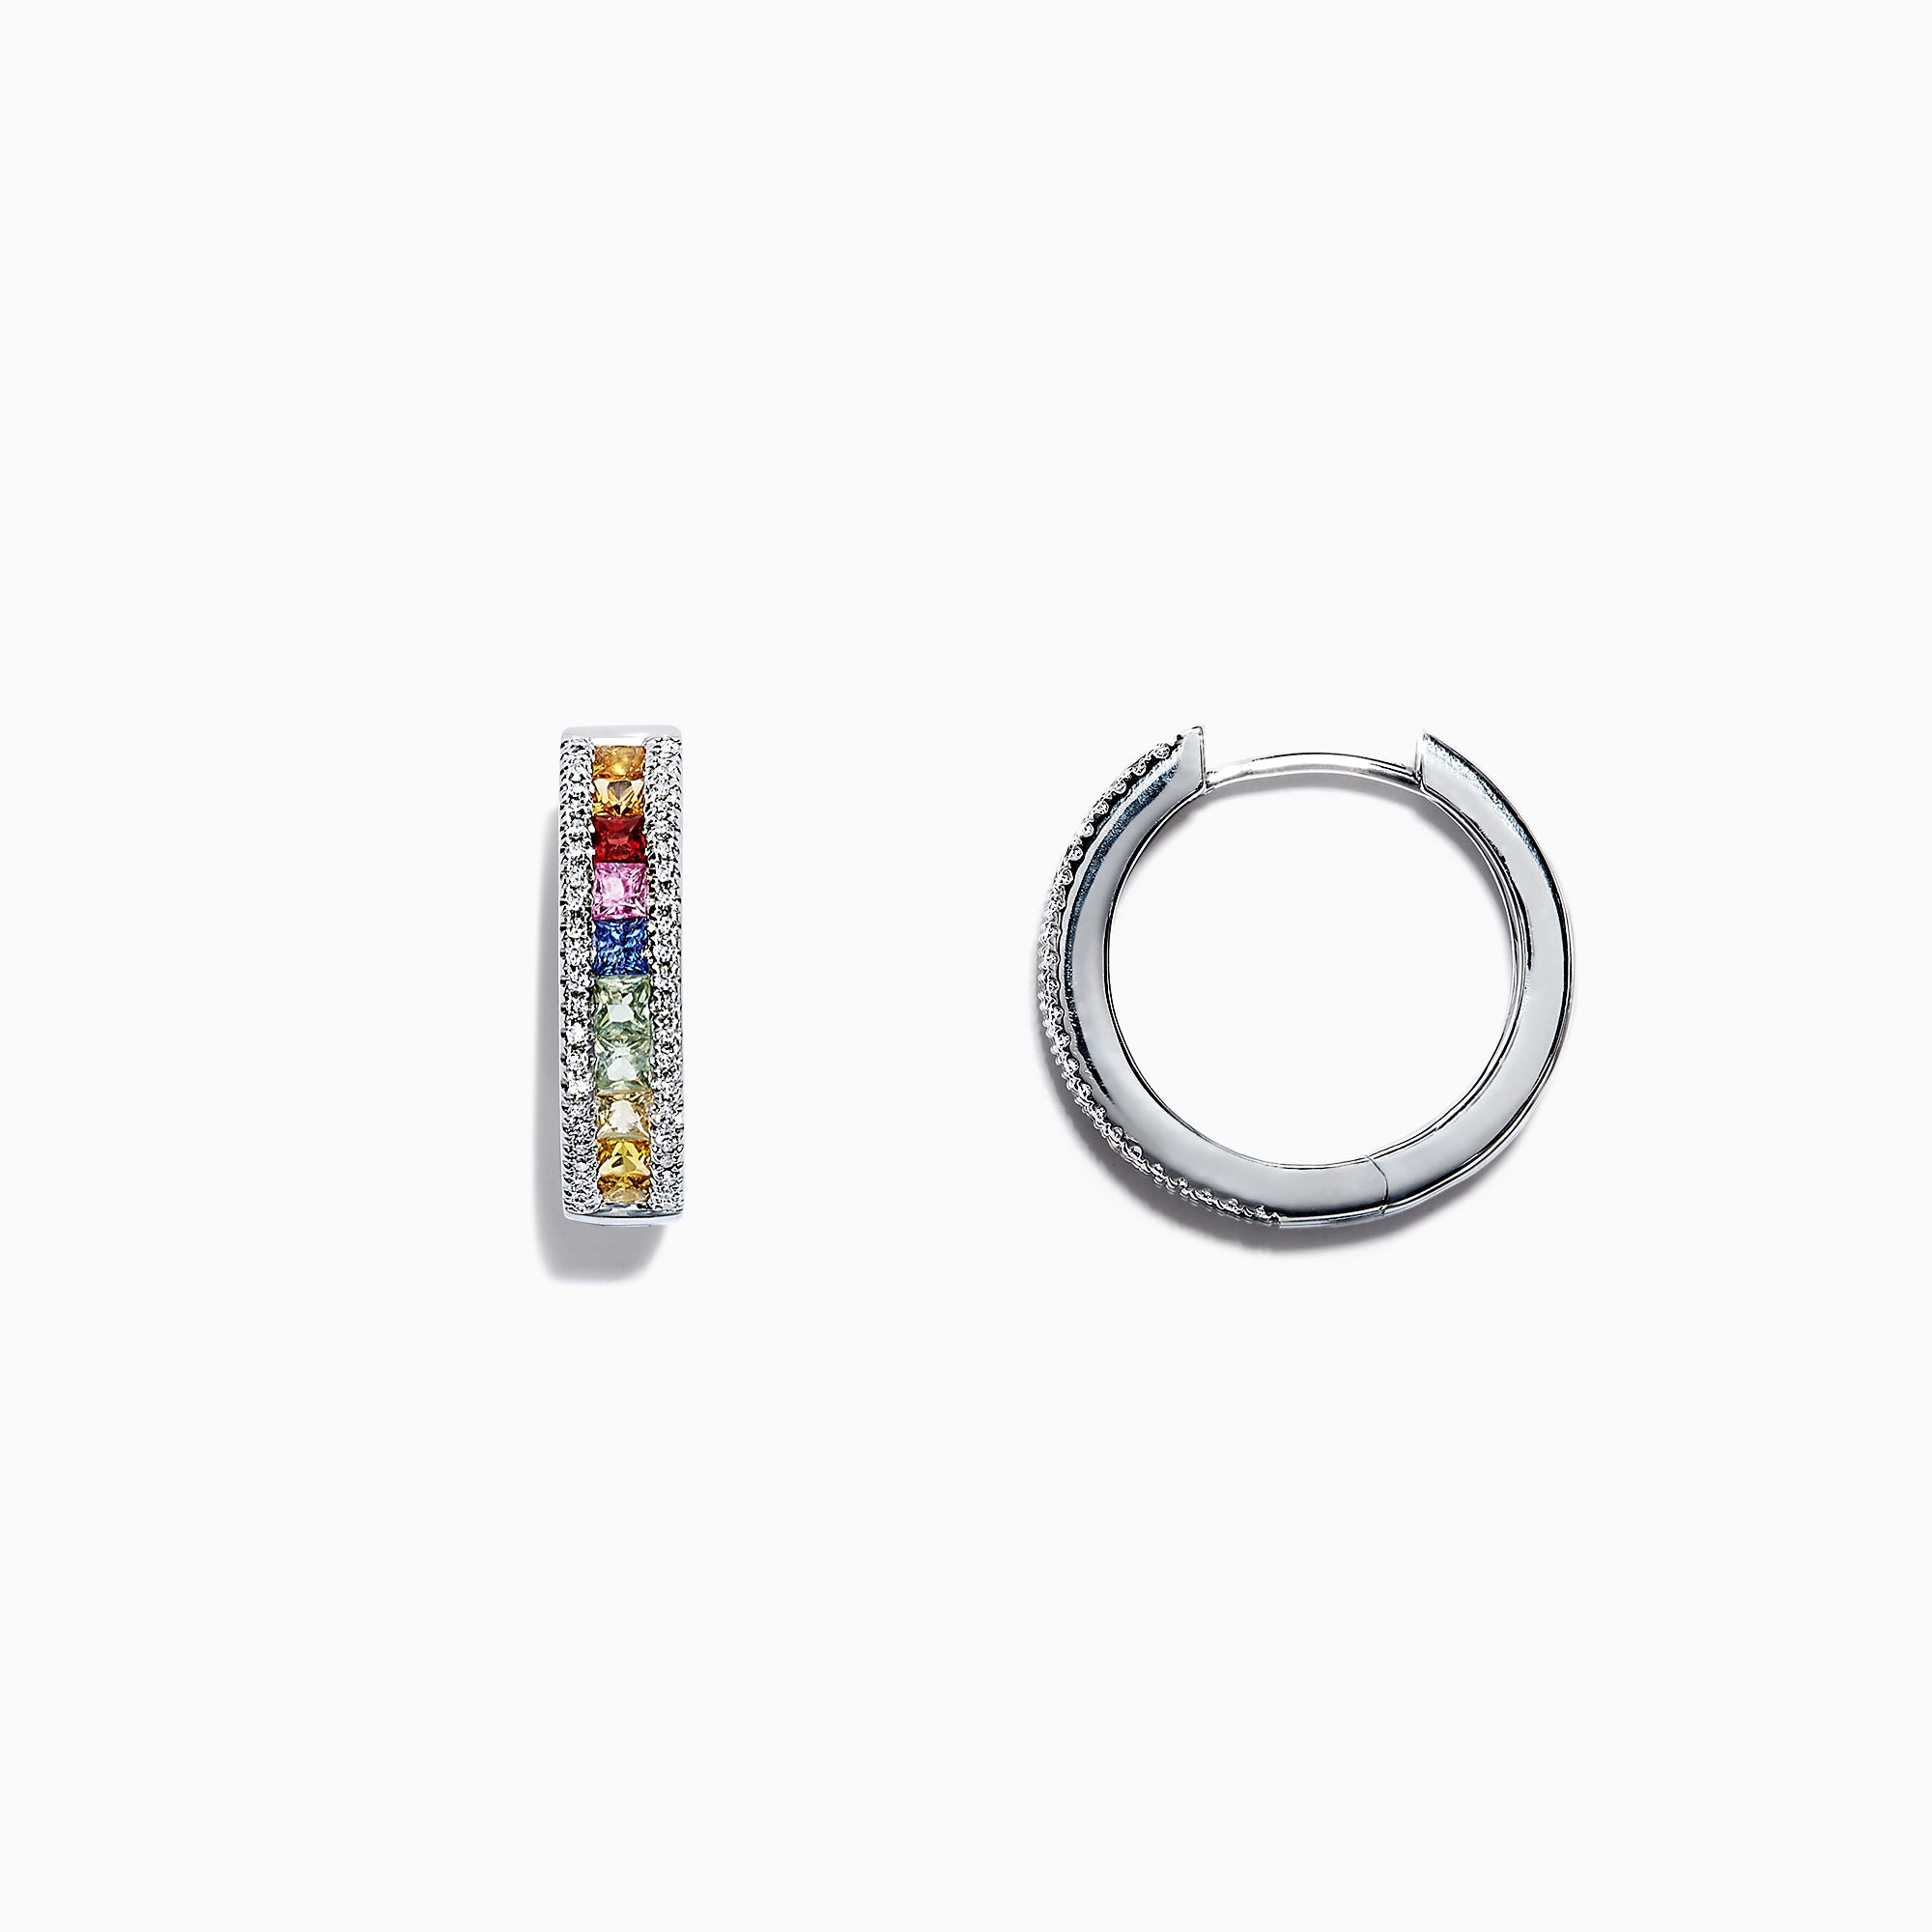 Effy Watercolors 14K White Gold Sapphire & Diamond Hoop Earrings, 2.13 TCW